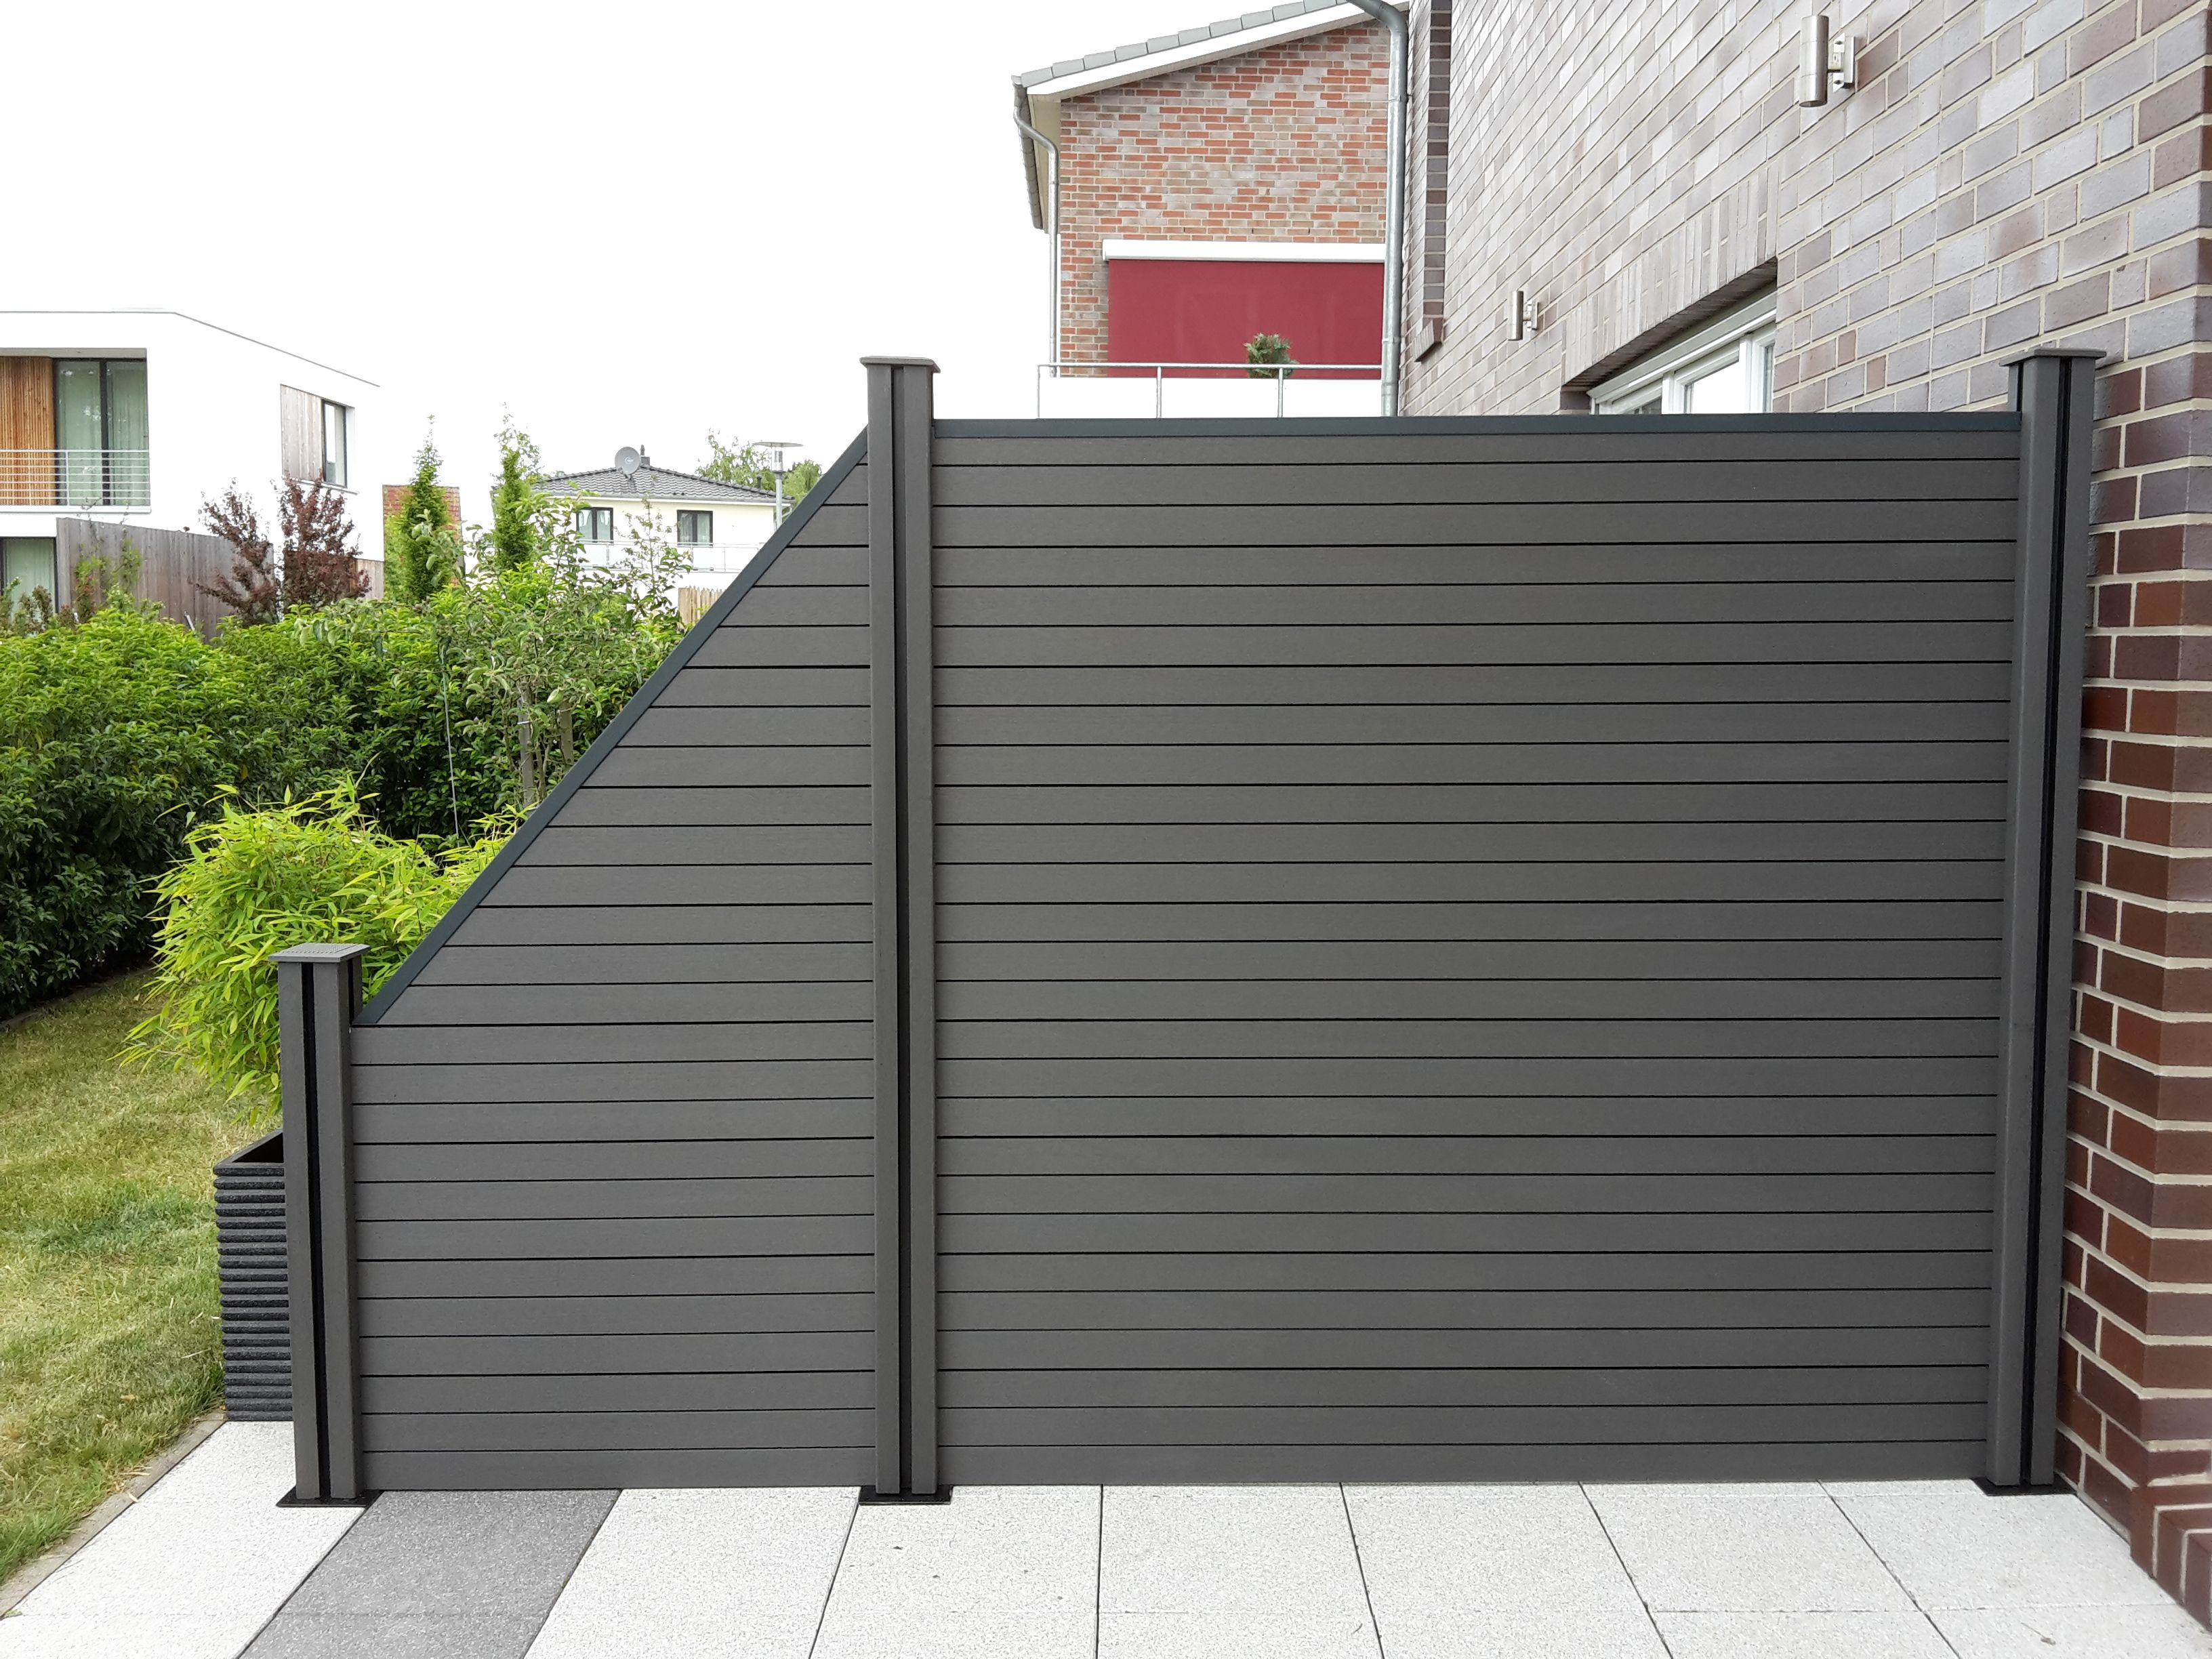 composite garden fence for sale garden patio wpc fence